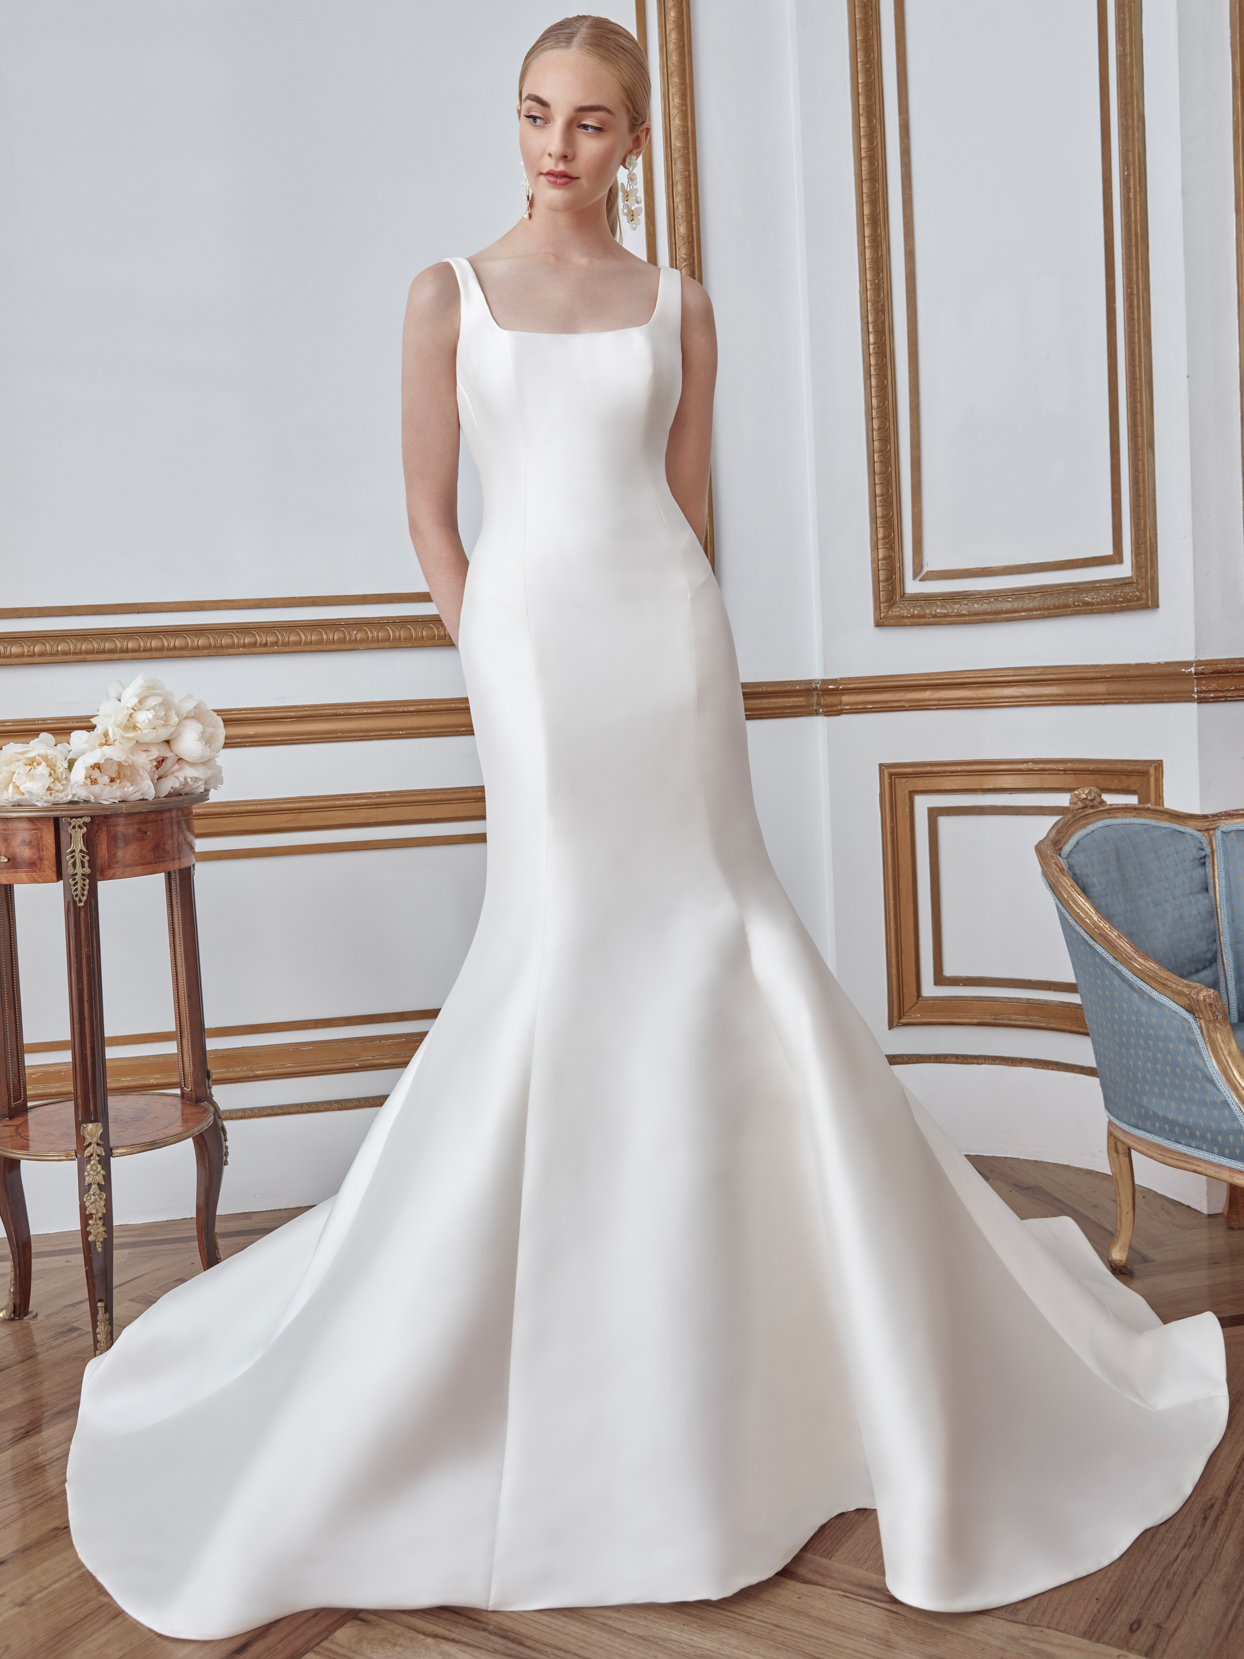 sareh nouri square neck mermaid wedding dress fall 2021